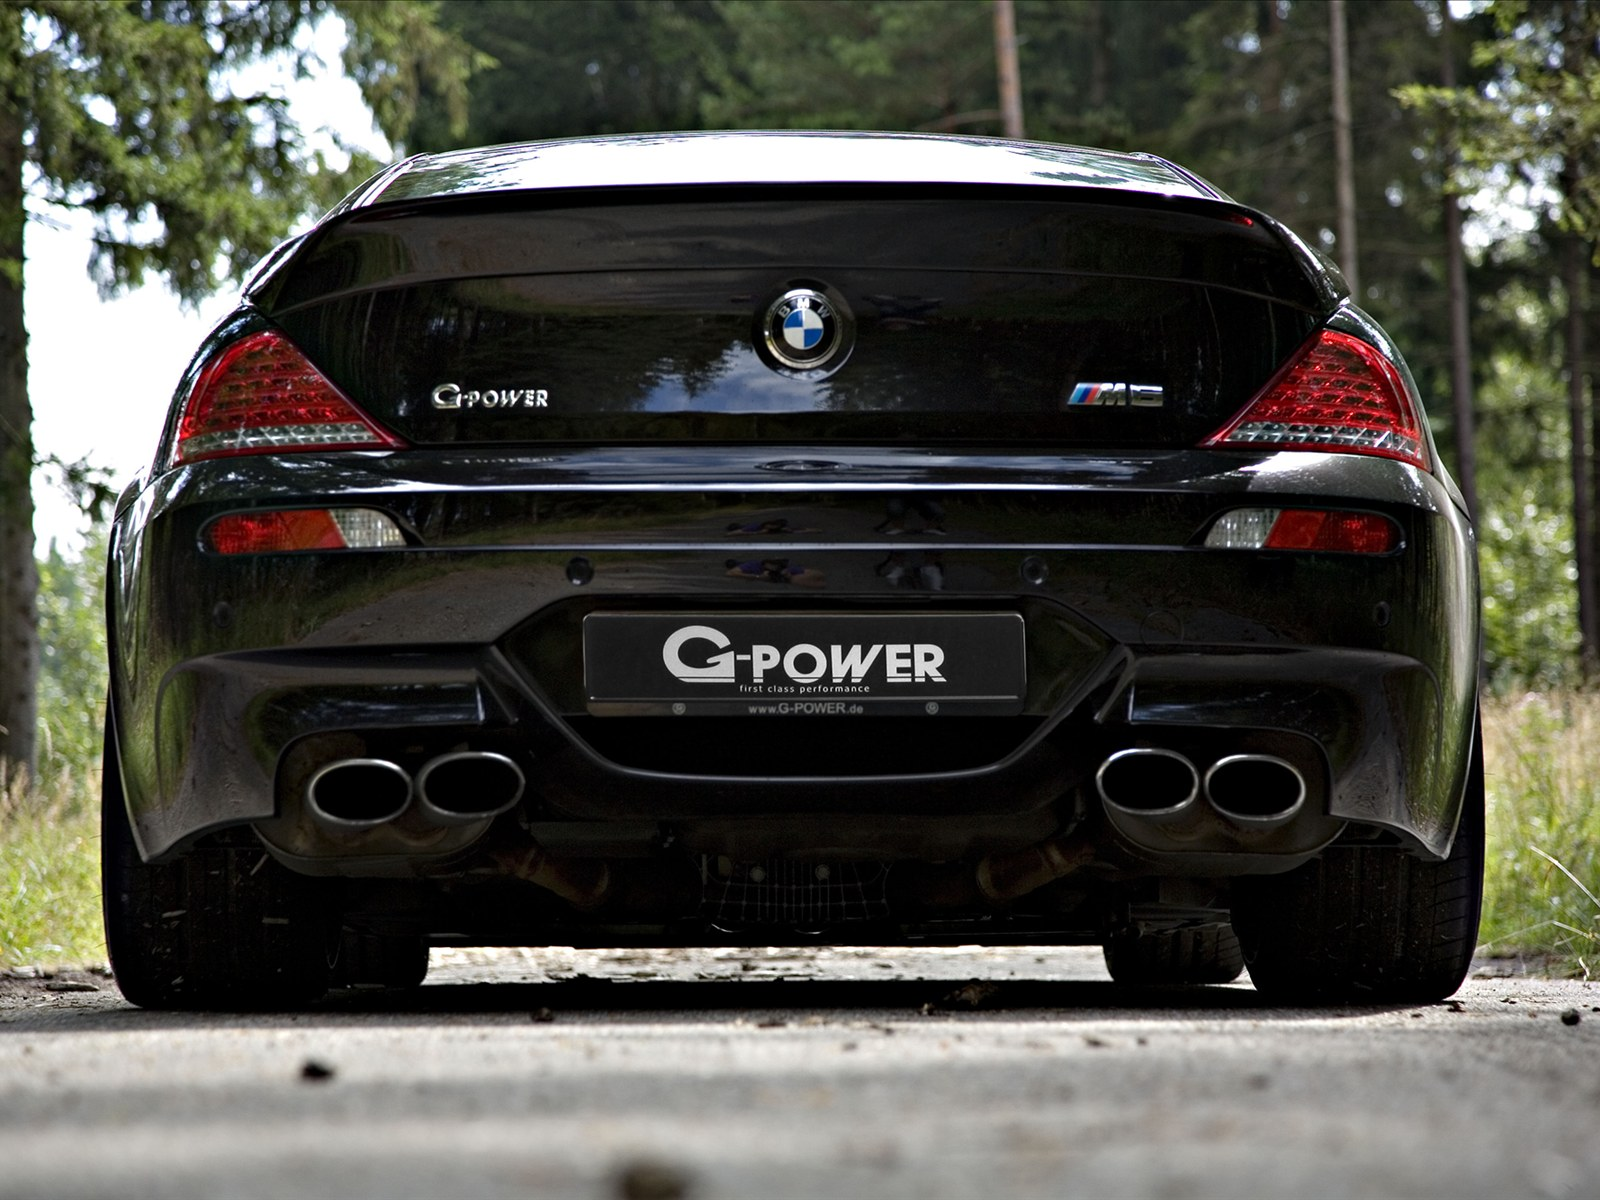 2010 G-power - Bmw M6 Hurricane RR